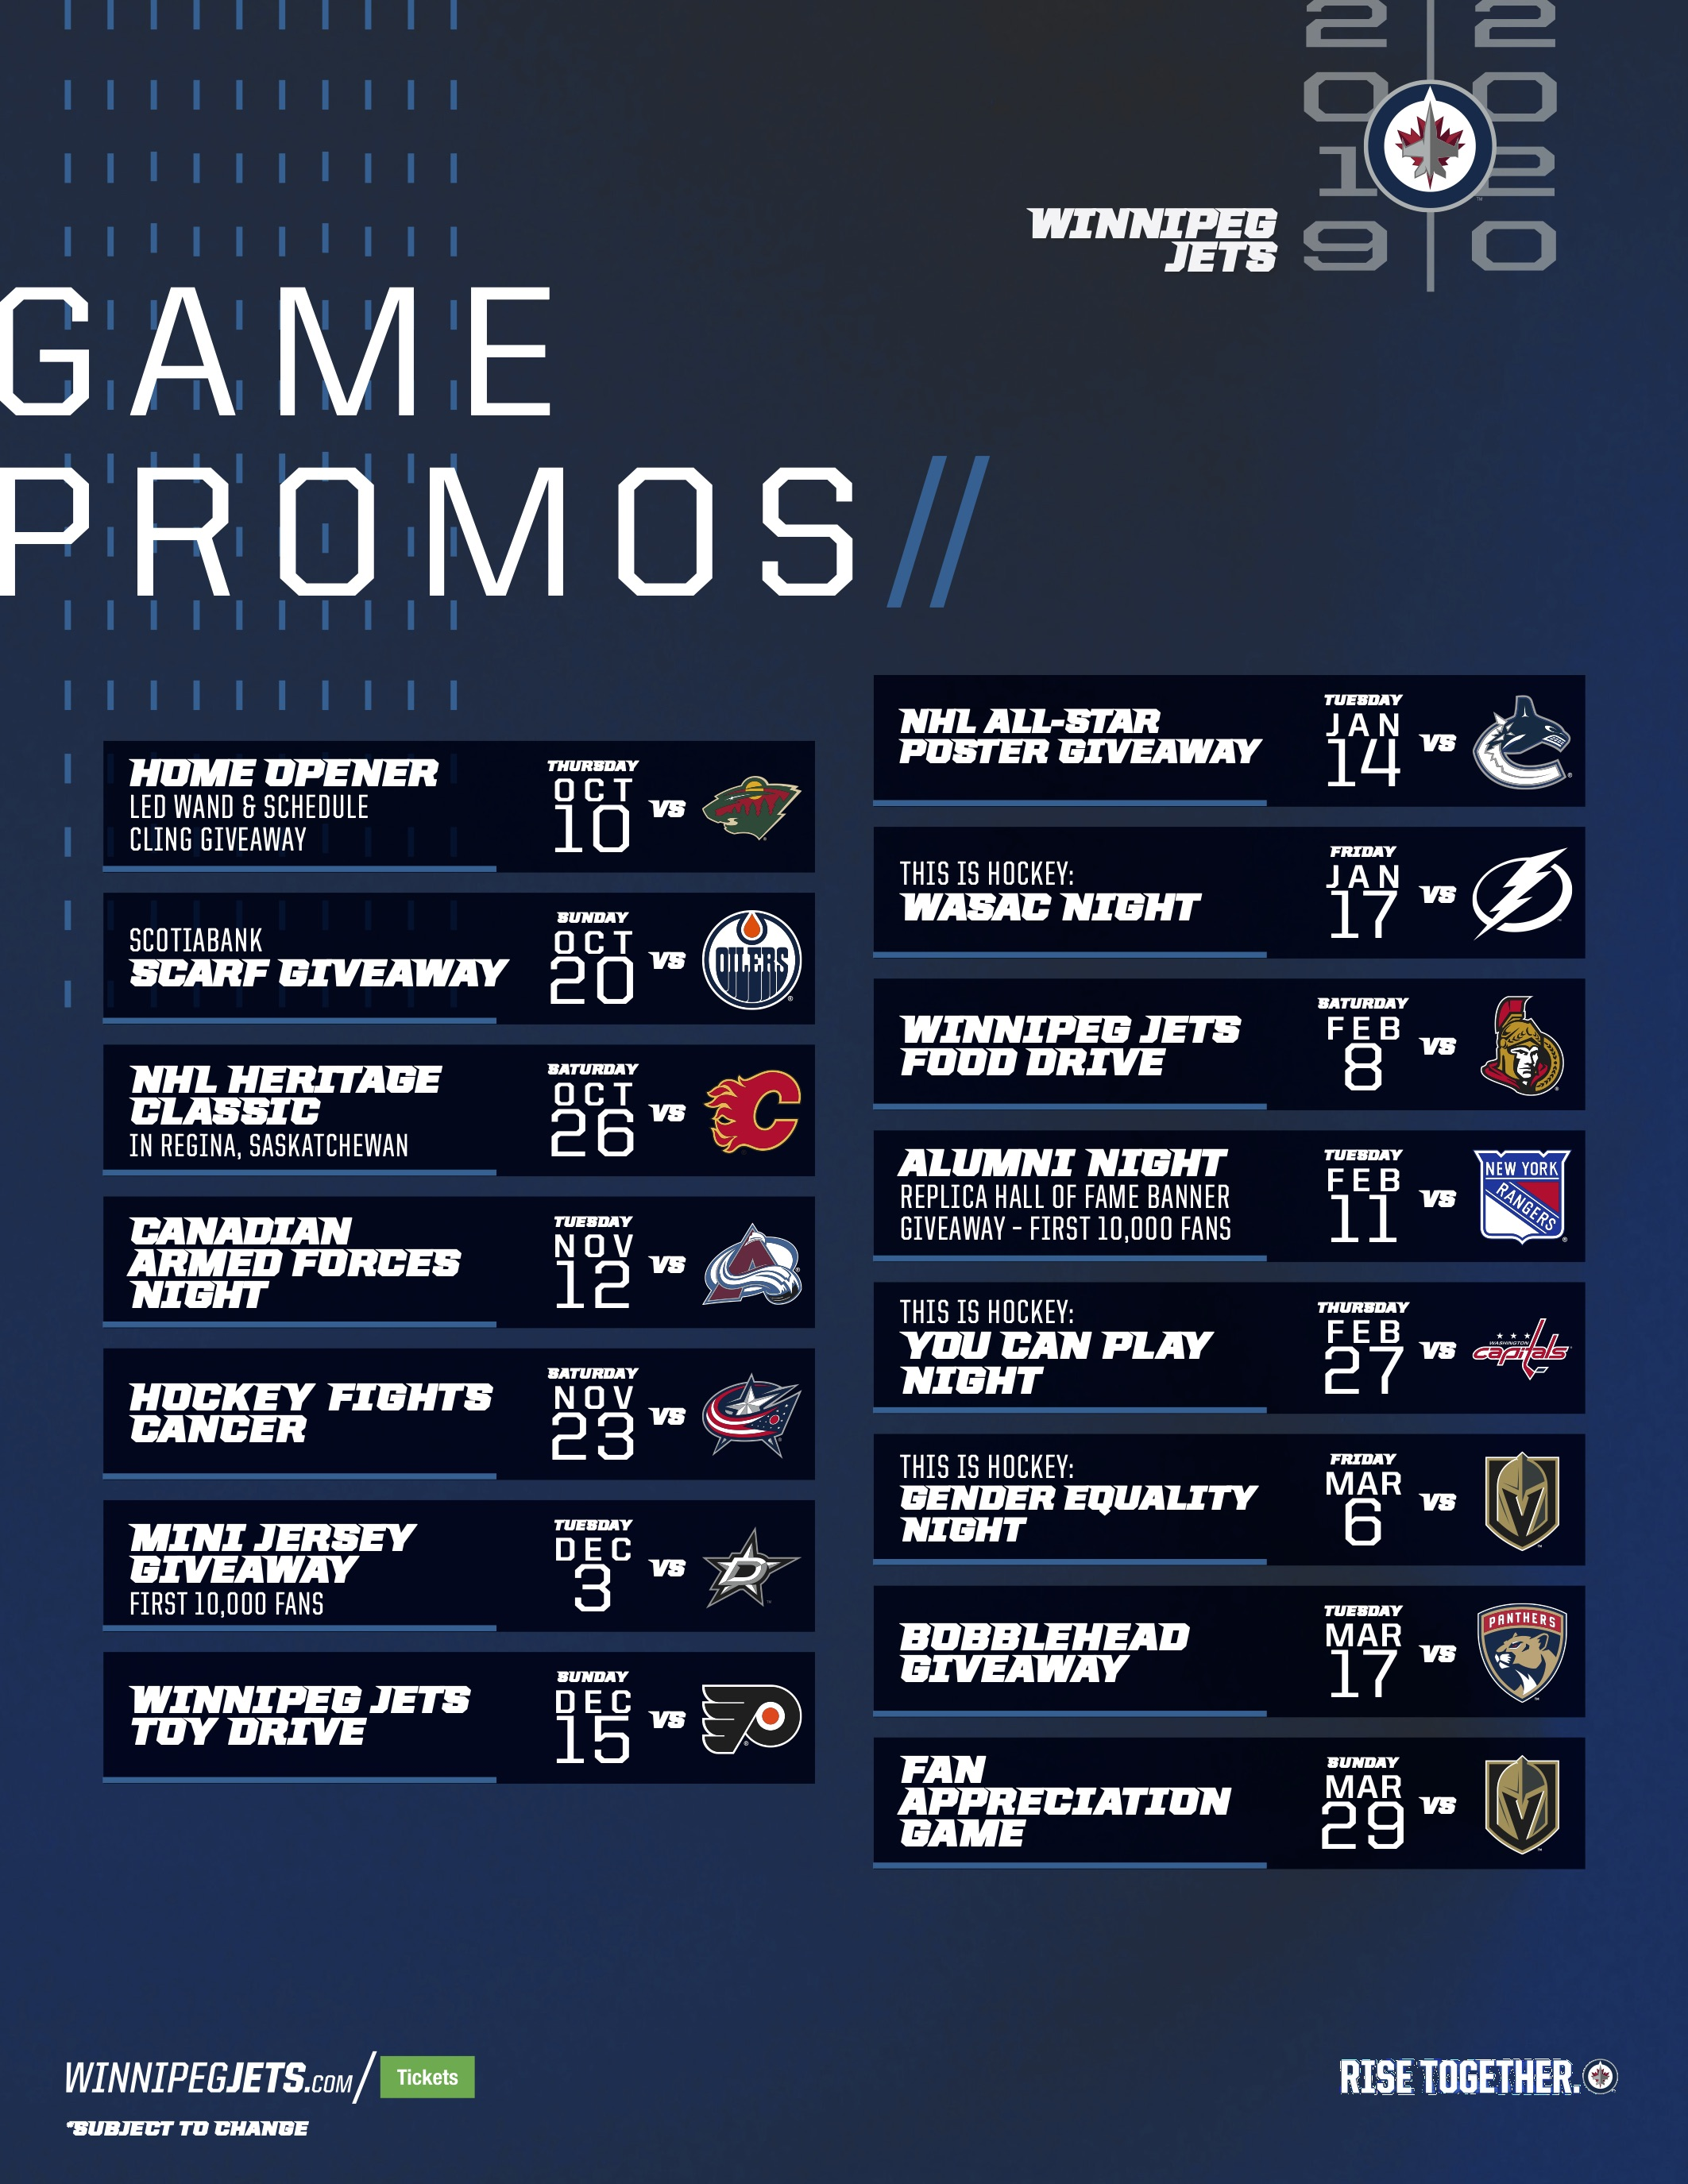 Winnipeg Jets Game Promo Schedule